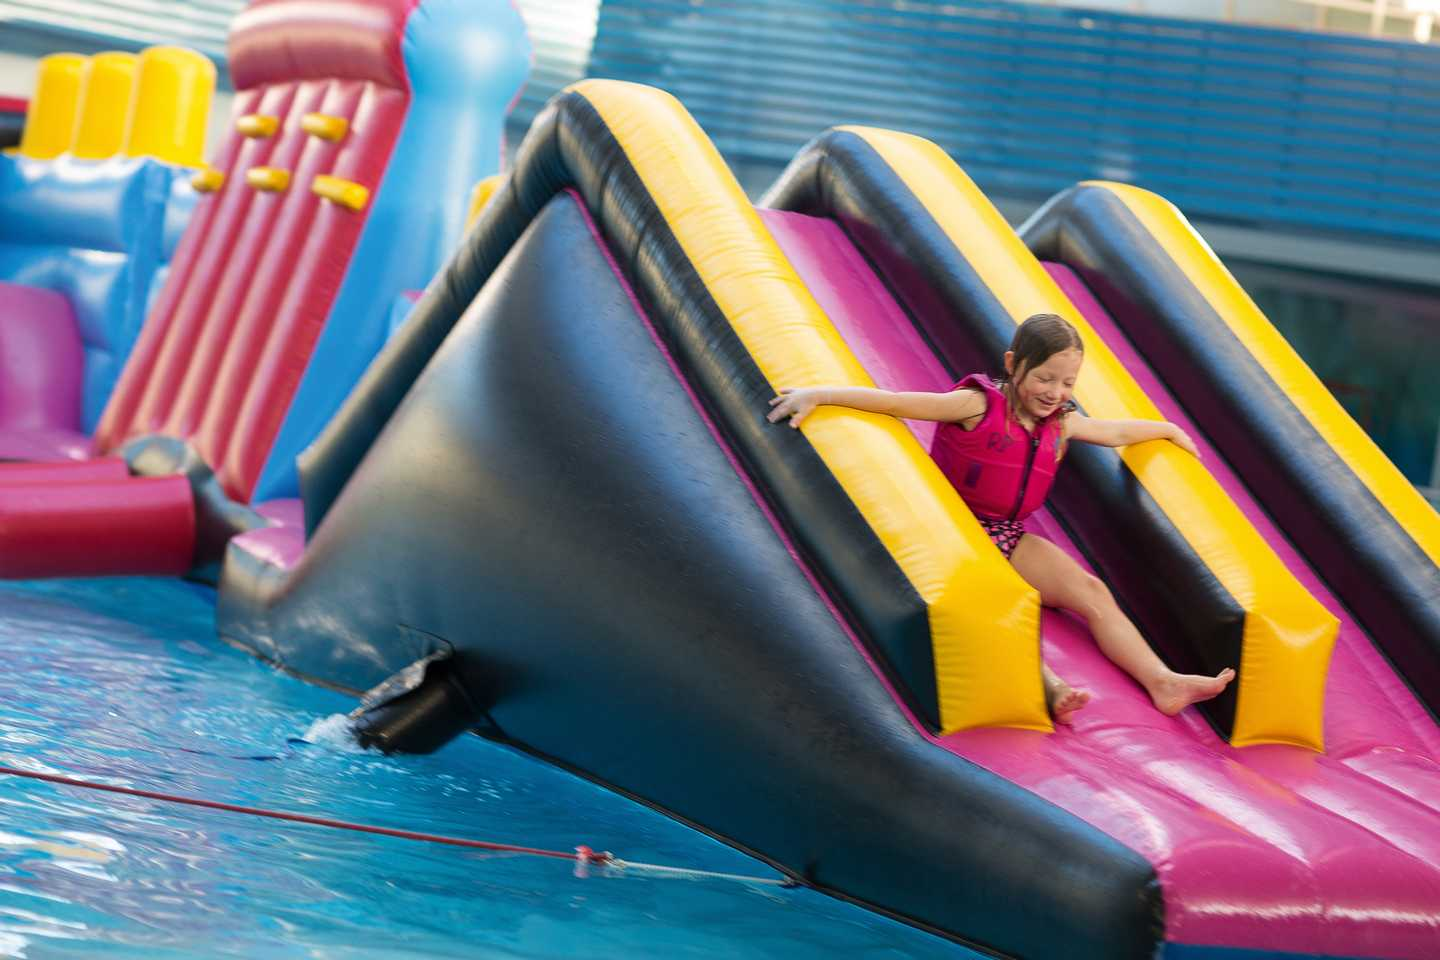 Child sliding down the inflatable slide, at Aqua Inflatable